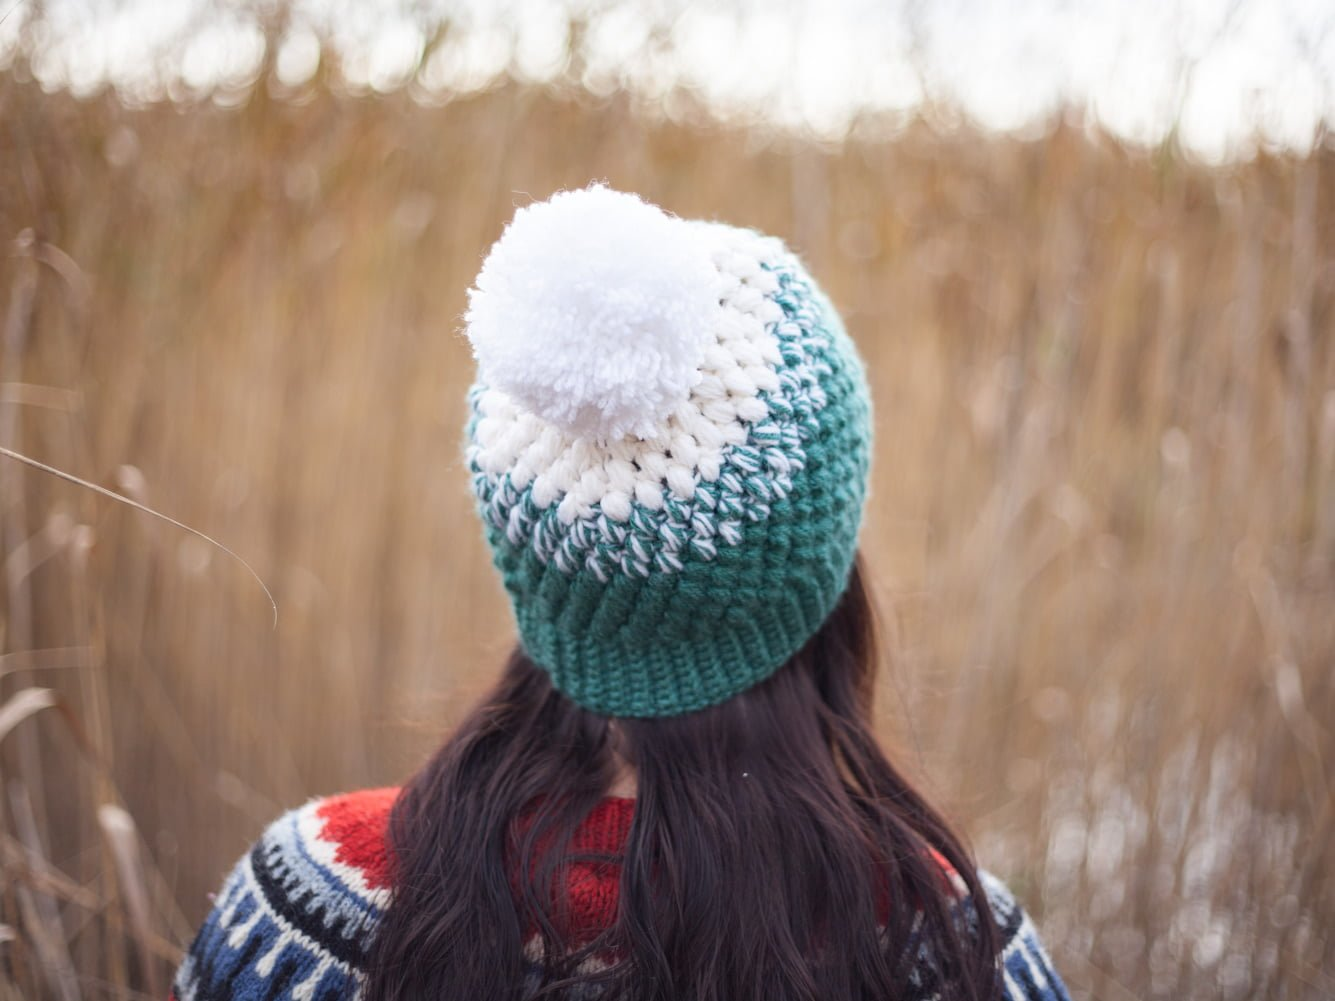 Behind view of girl with mint and white colored pompom beanie